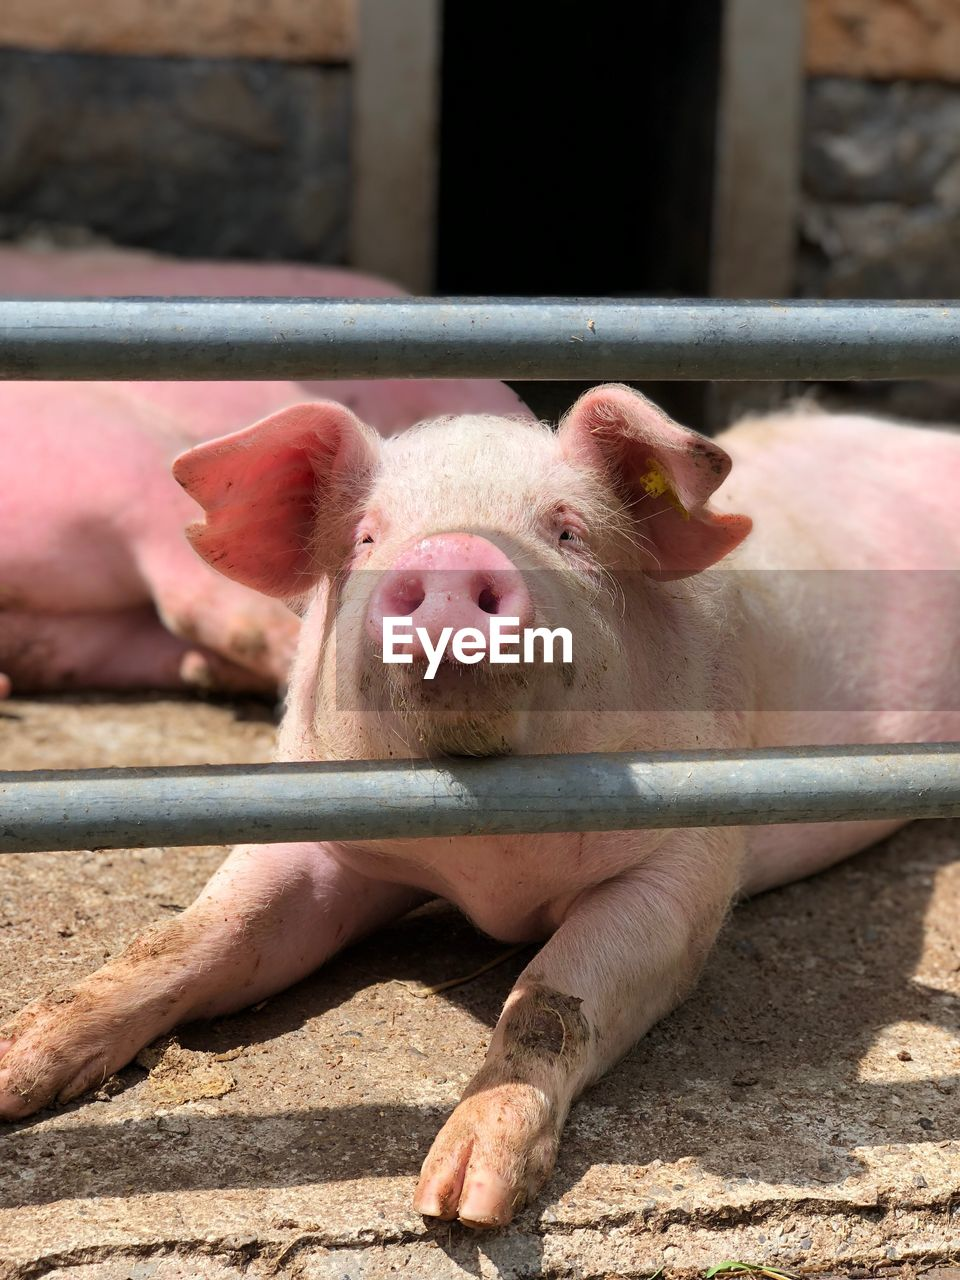 mammal, pig, animal themes, domestic animals, animal, pets, livestock, domestic, no people, day, group of animals, sunlight, vertebrate, nose, nature, focus on foreground, piglet, snout, farm, pink color, outdoors, herbivorous, animal pen, animal head